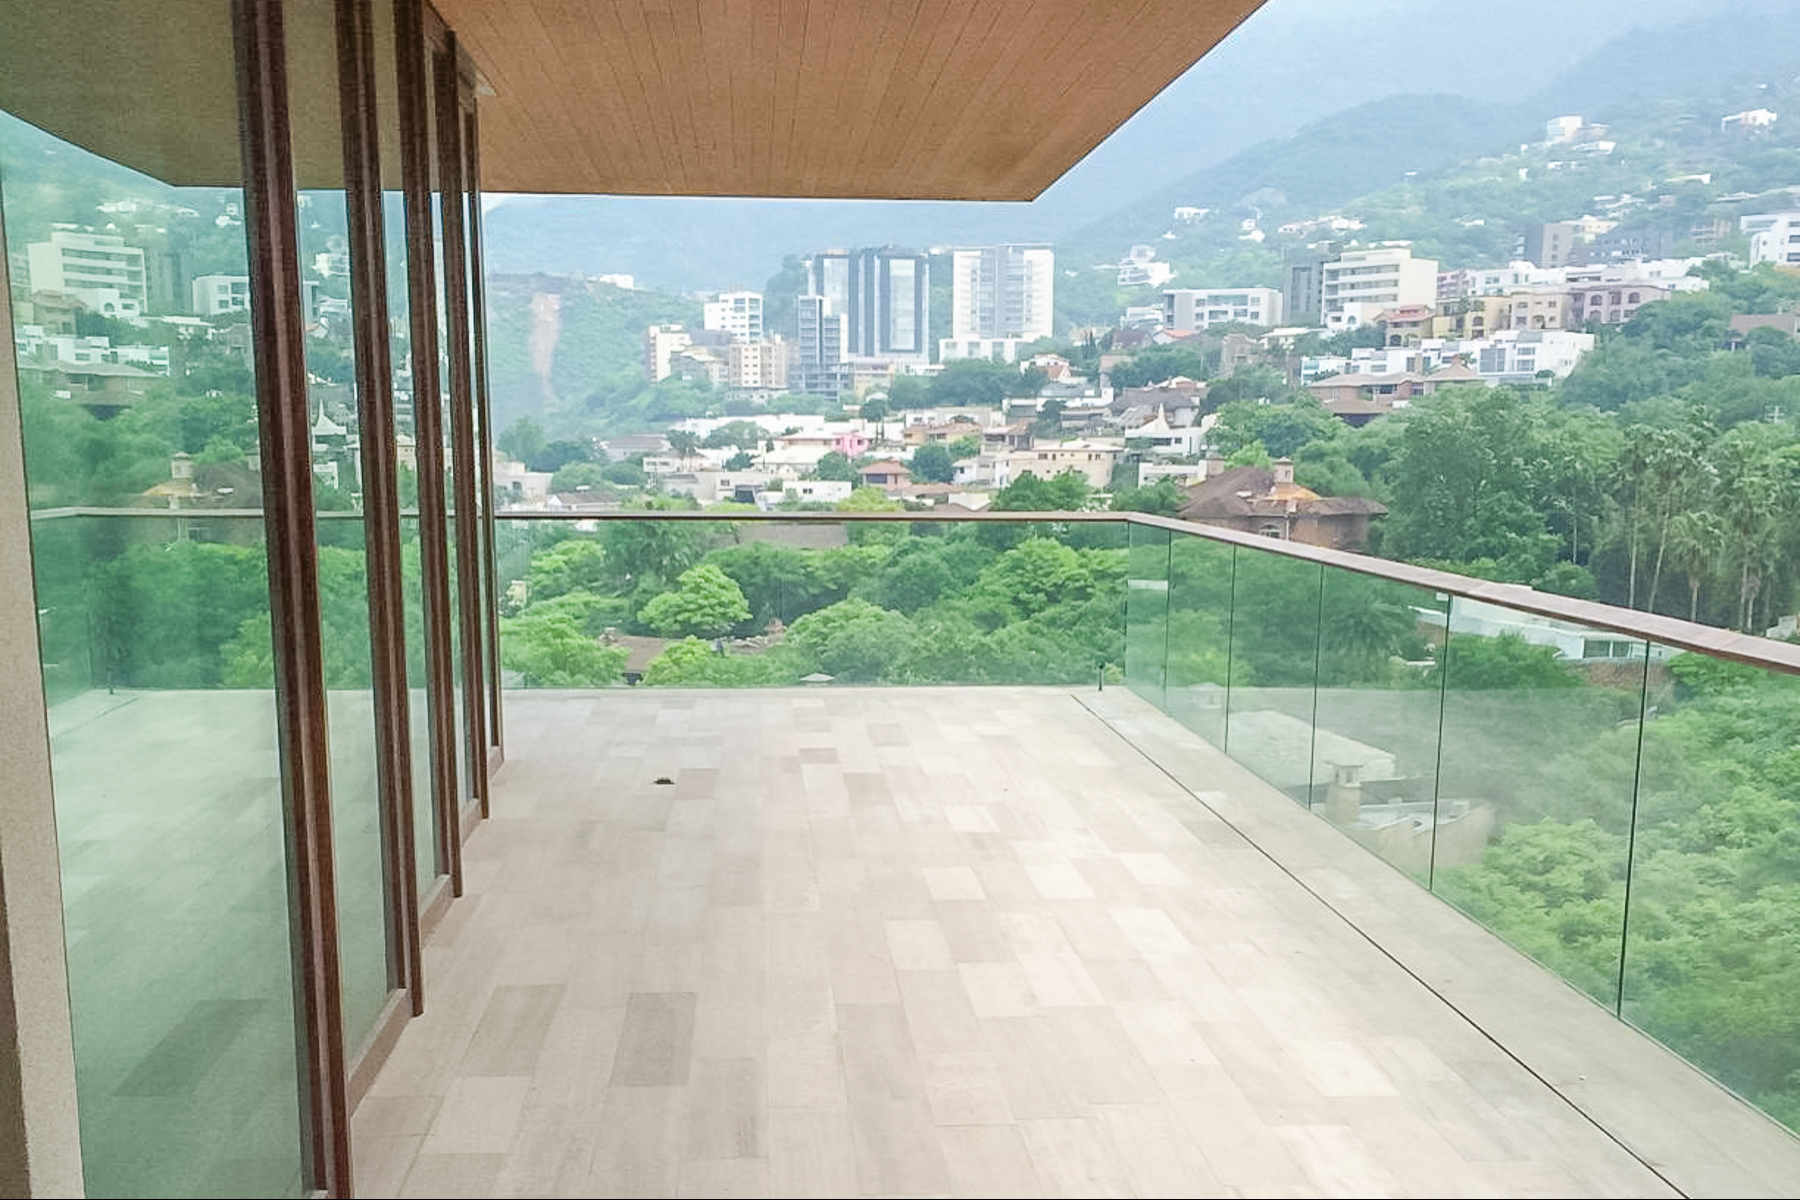 Additional photo for property listing at El Alear - D405  Other Nuevo Leon, Nuevo Leon 66254 Mexico